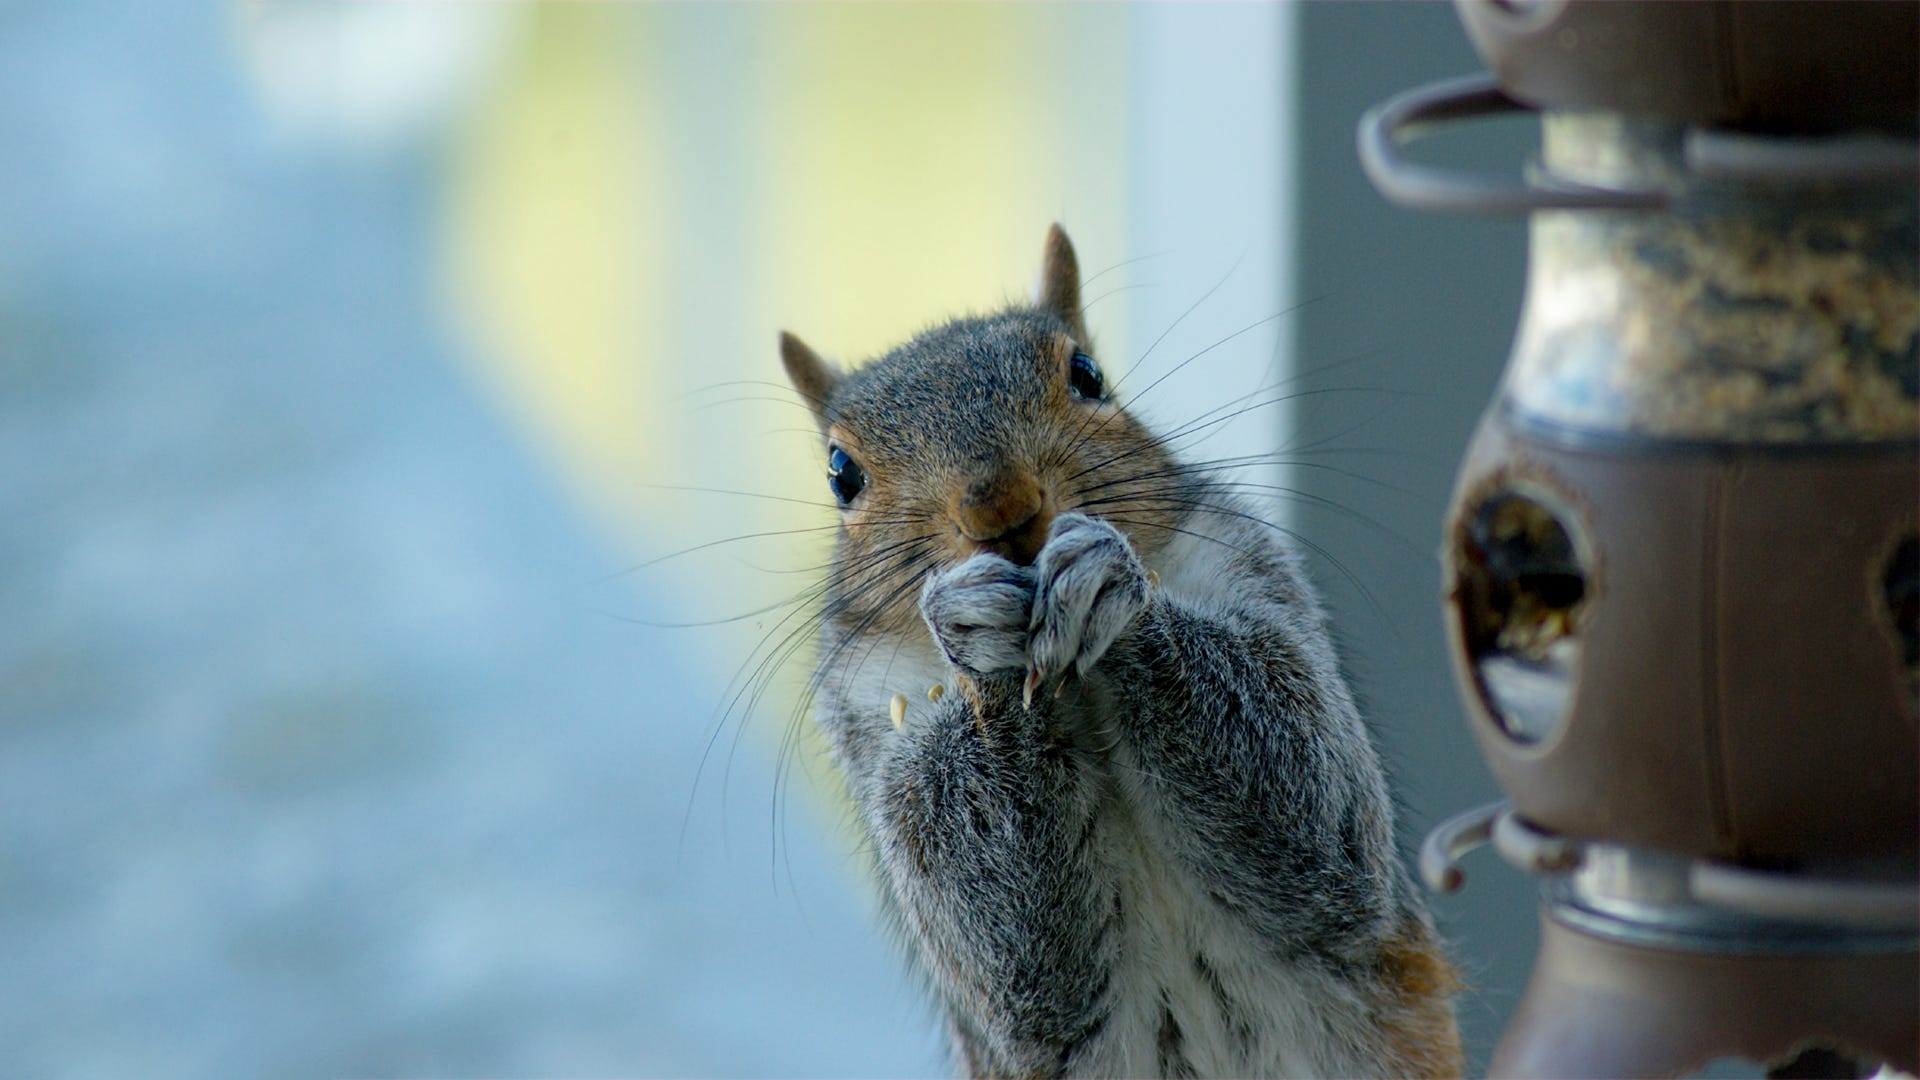 America's Most Wanted: Squirrels Gone Wild